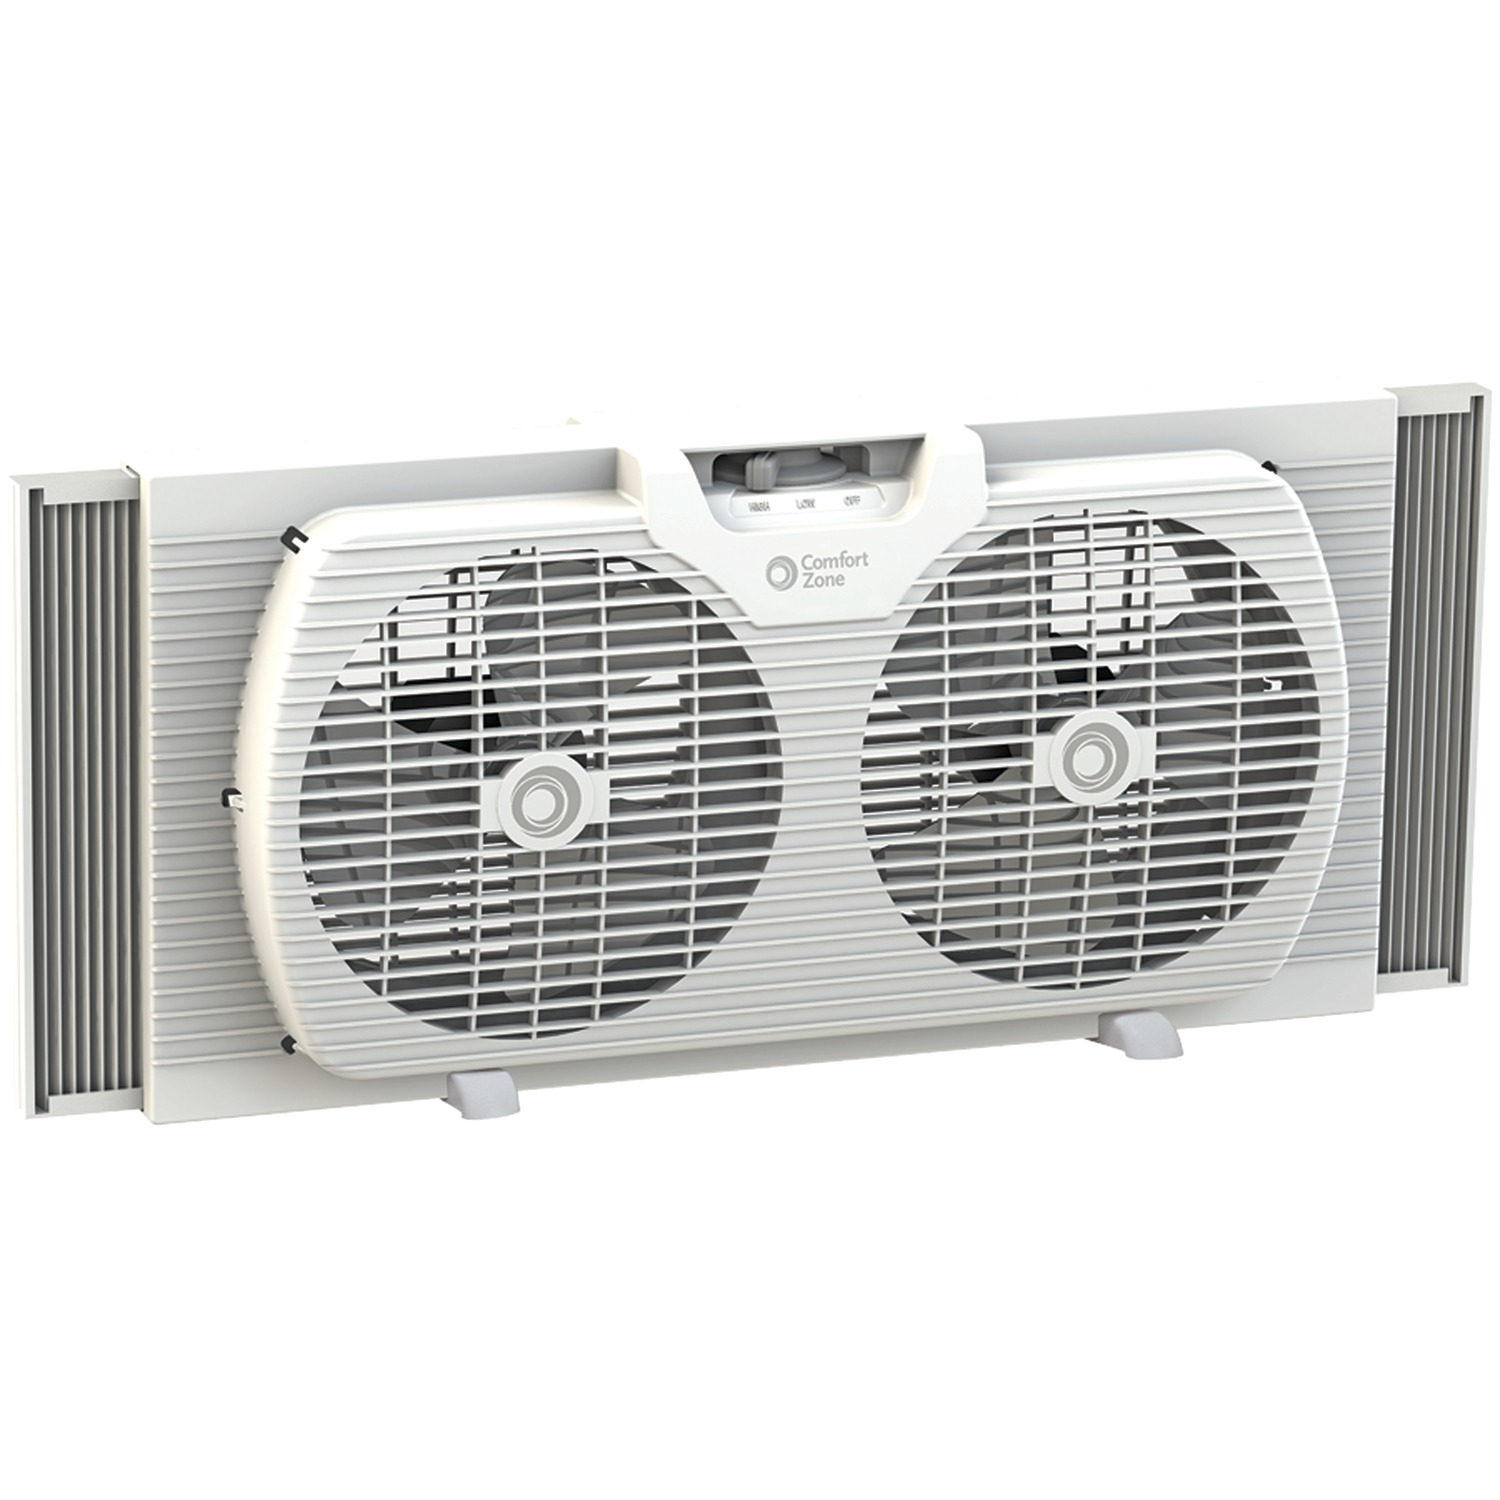 "Comfort Zone CZ319WT 9"" Twin Portable Window Fan"